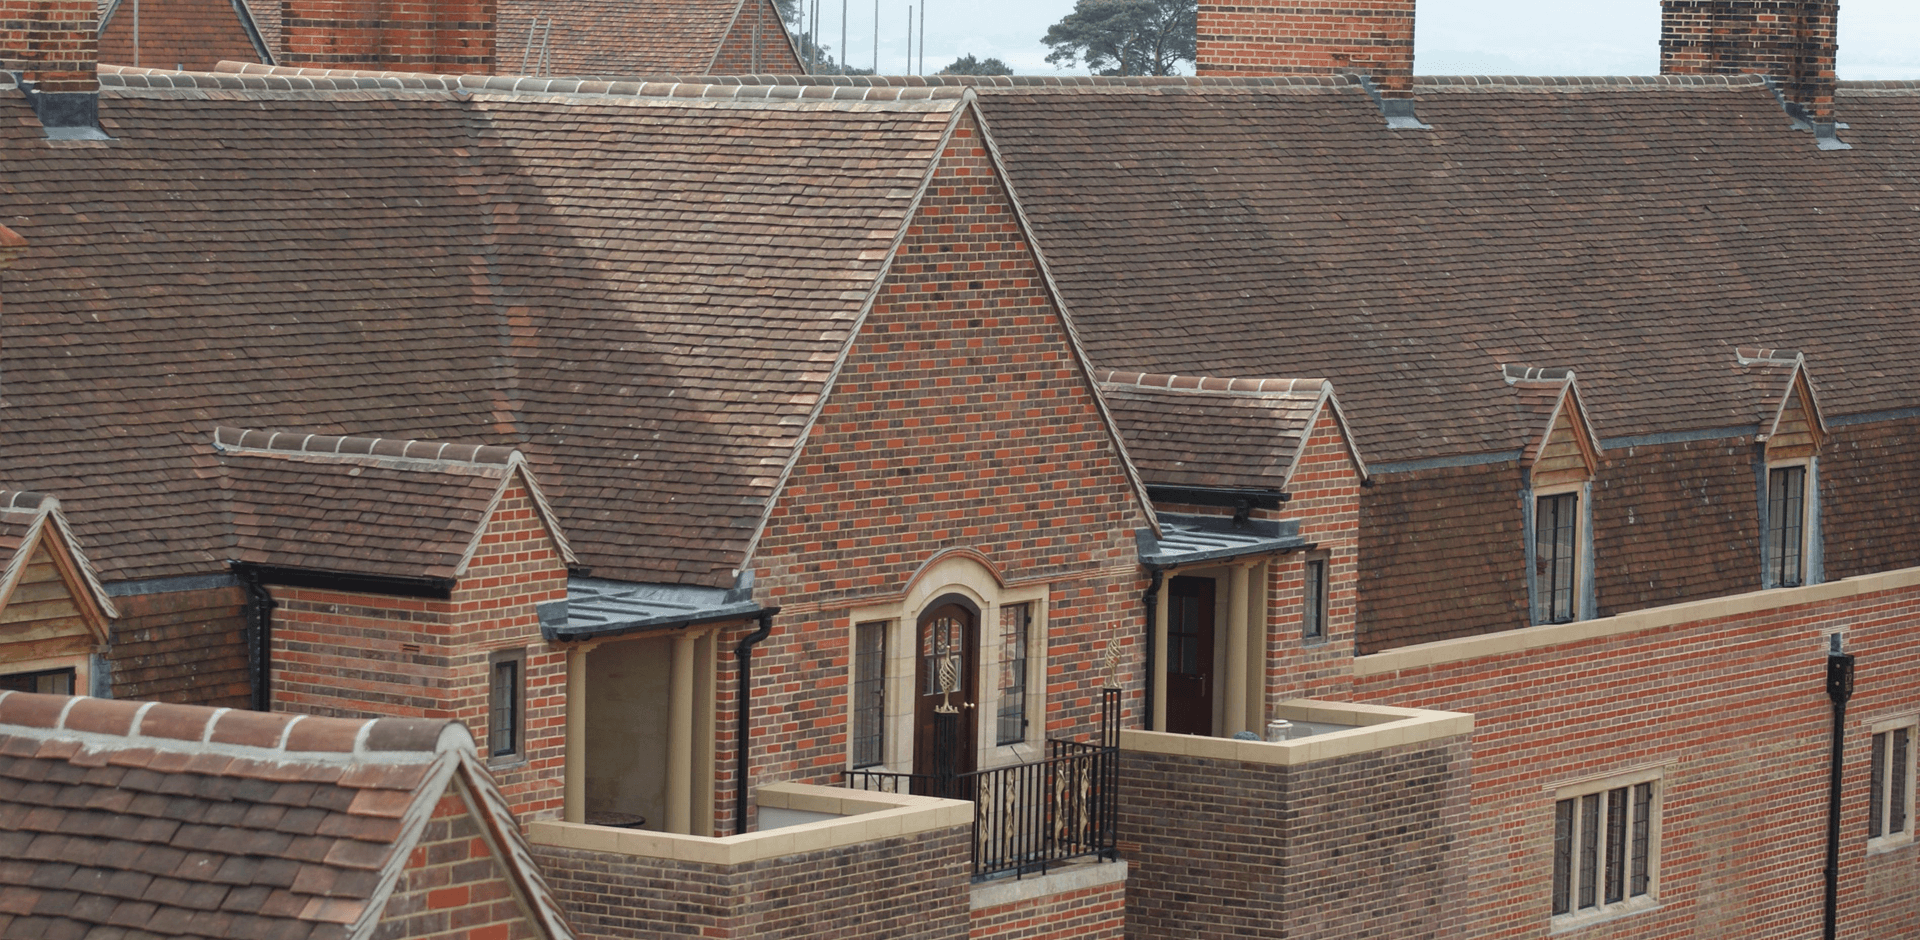 A close up of a large red tiled roof with matching red bricks